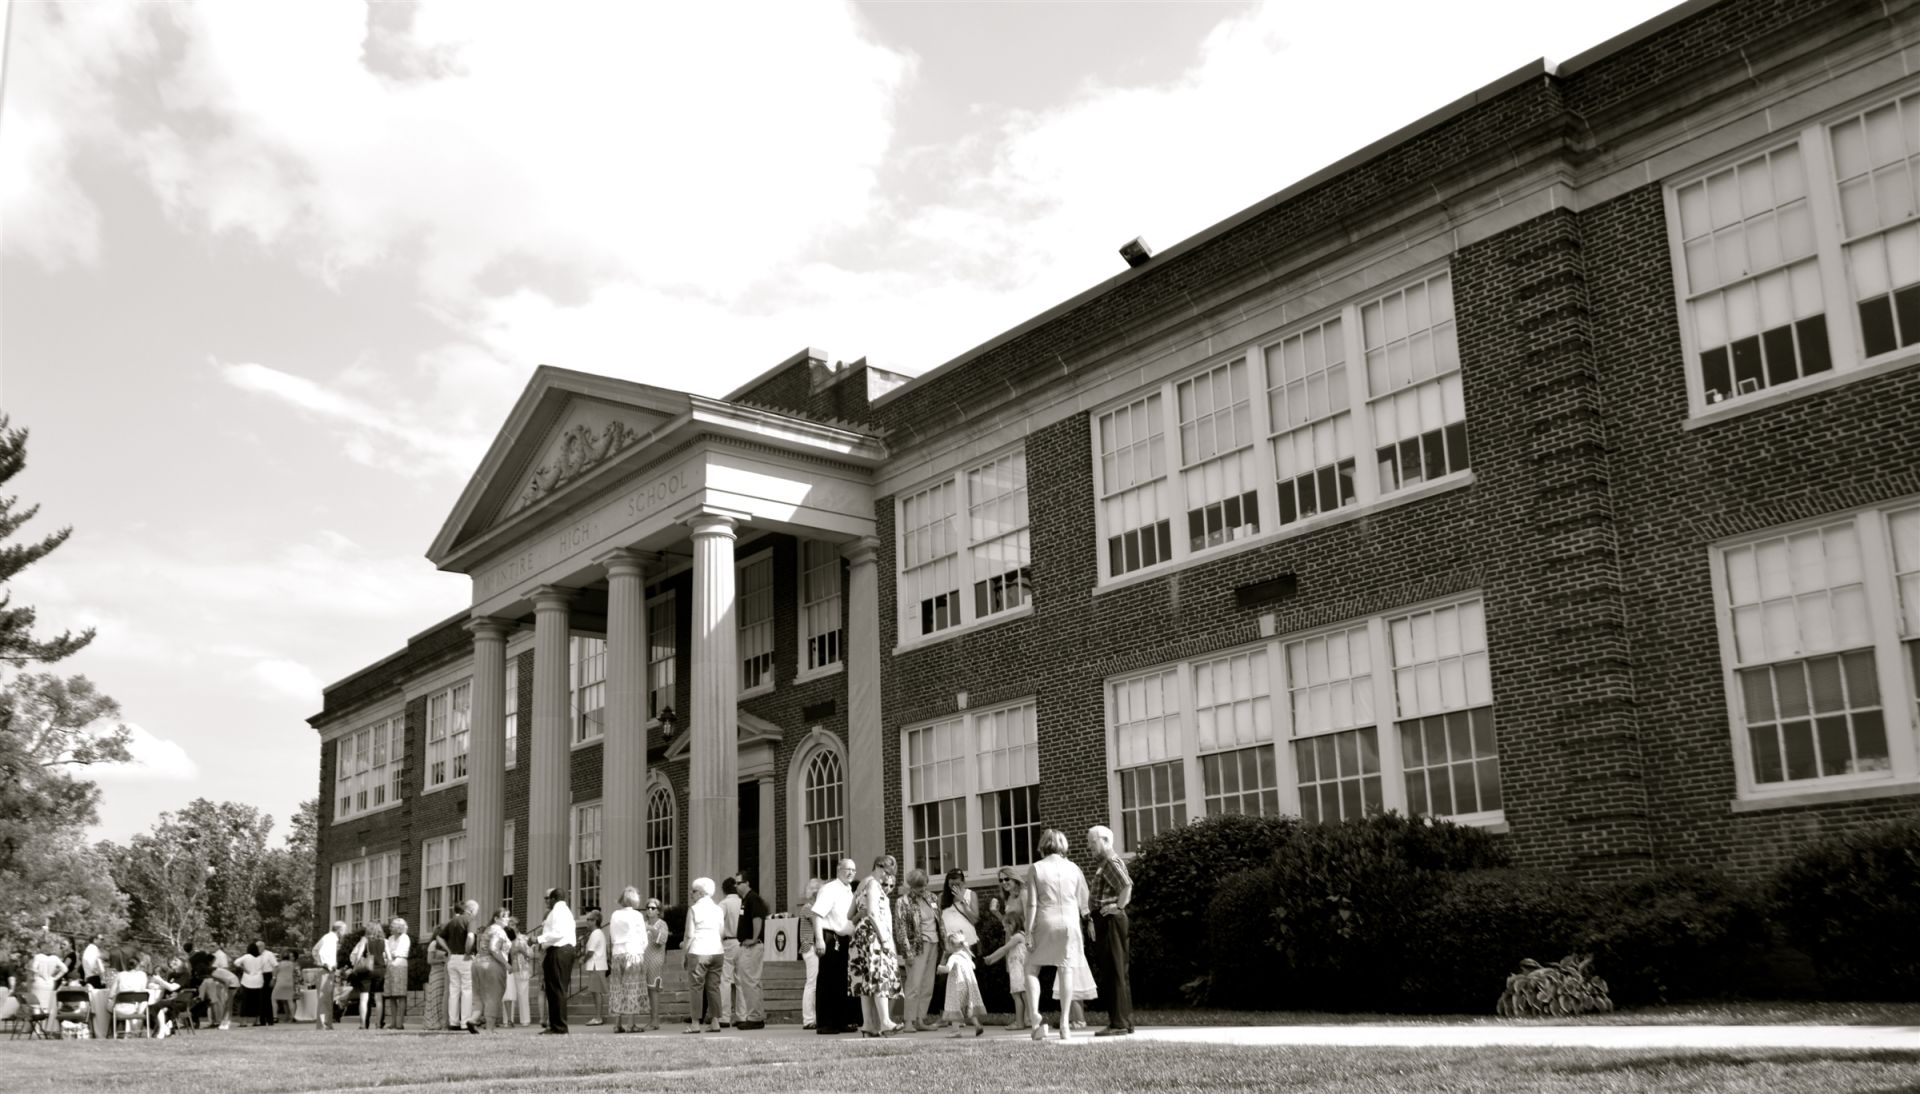 The historic McIntire building has been home to The Covenant School for 33 years.